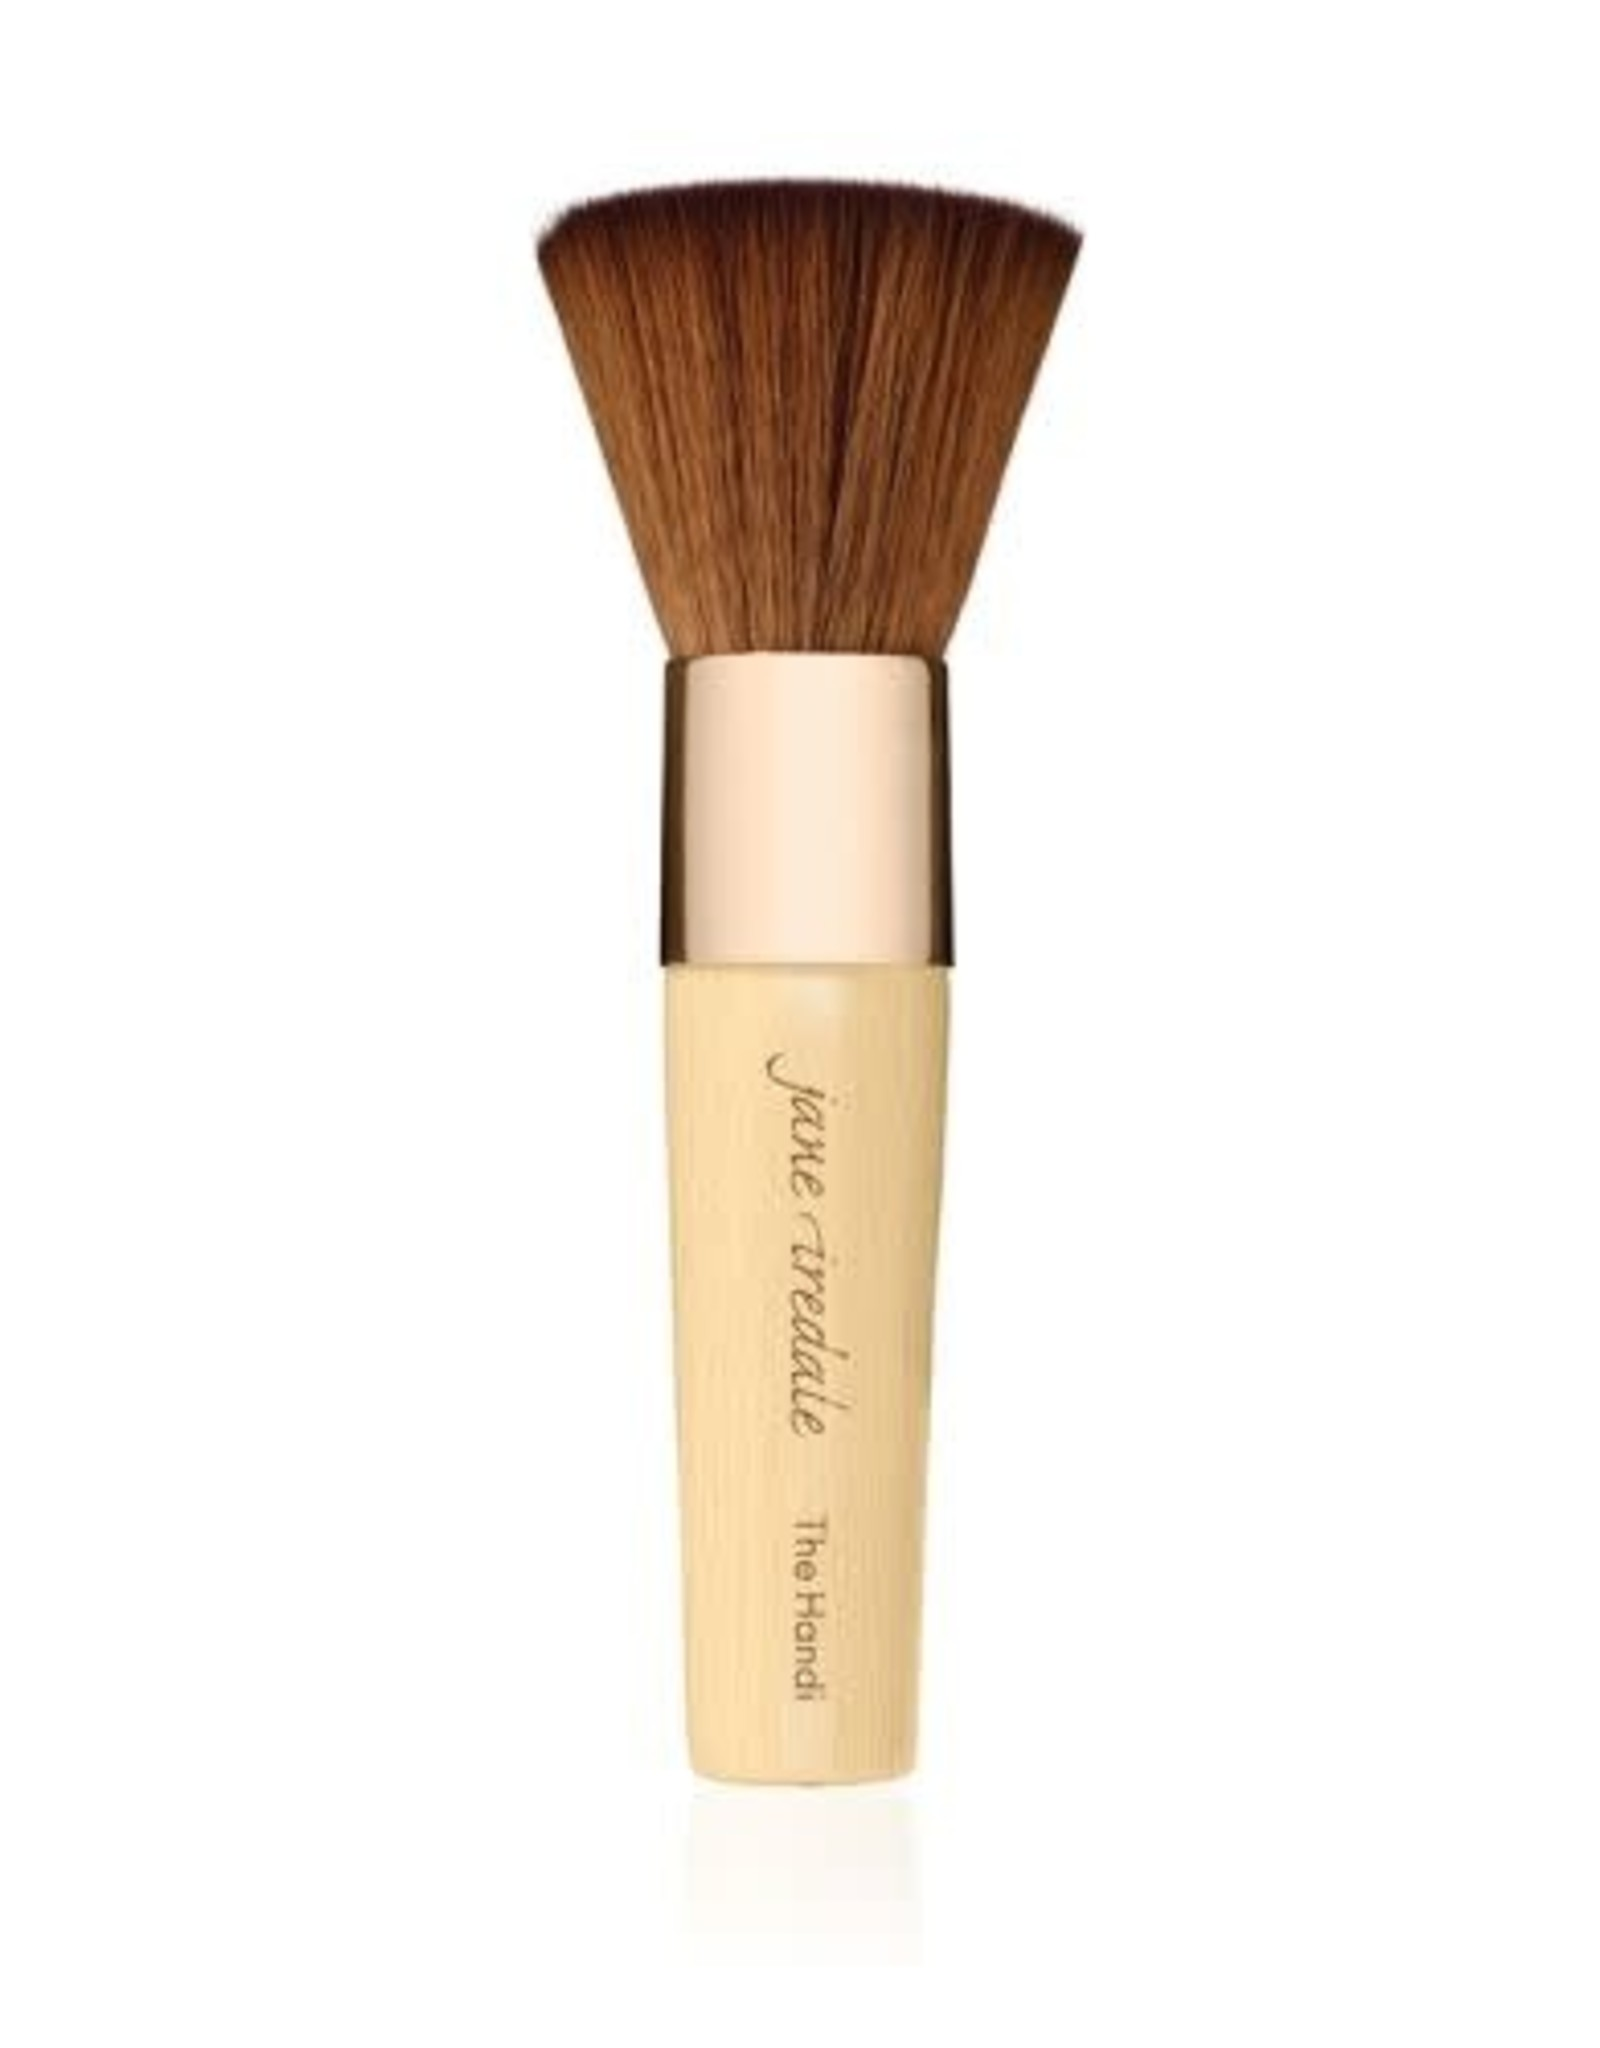 Jane Iredale Makeup Brush | The Handi